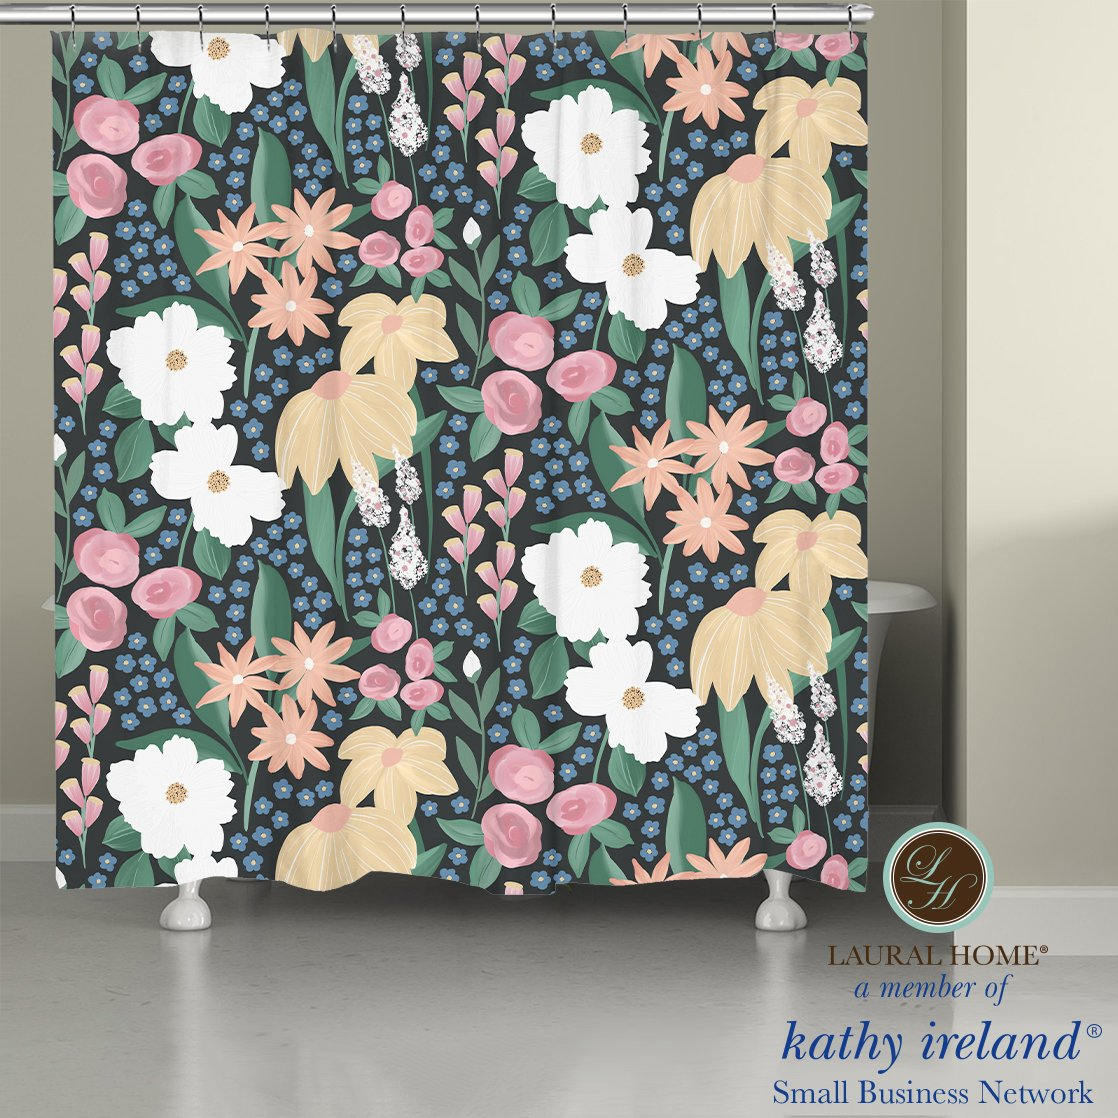 Laural Home kathy ireland® Small Business Network Member Delicate Floral Midnight Garden Shower Curtain